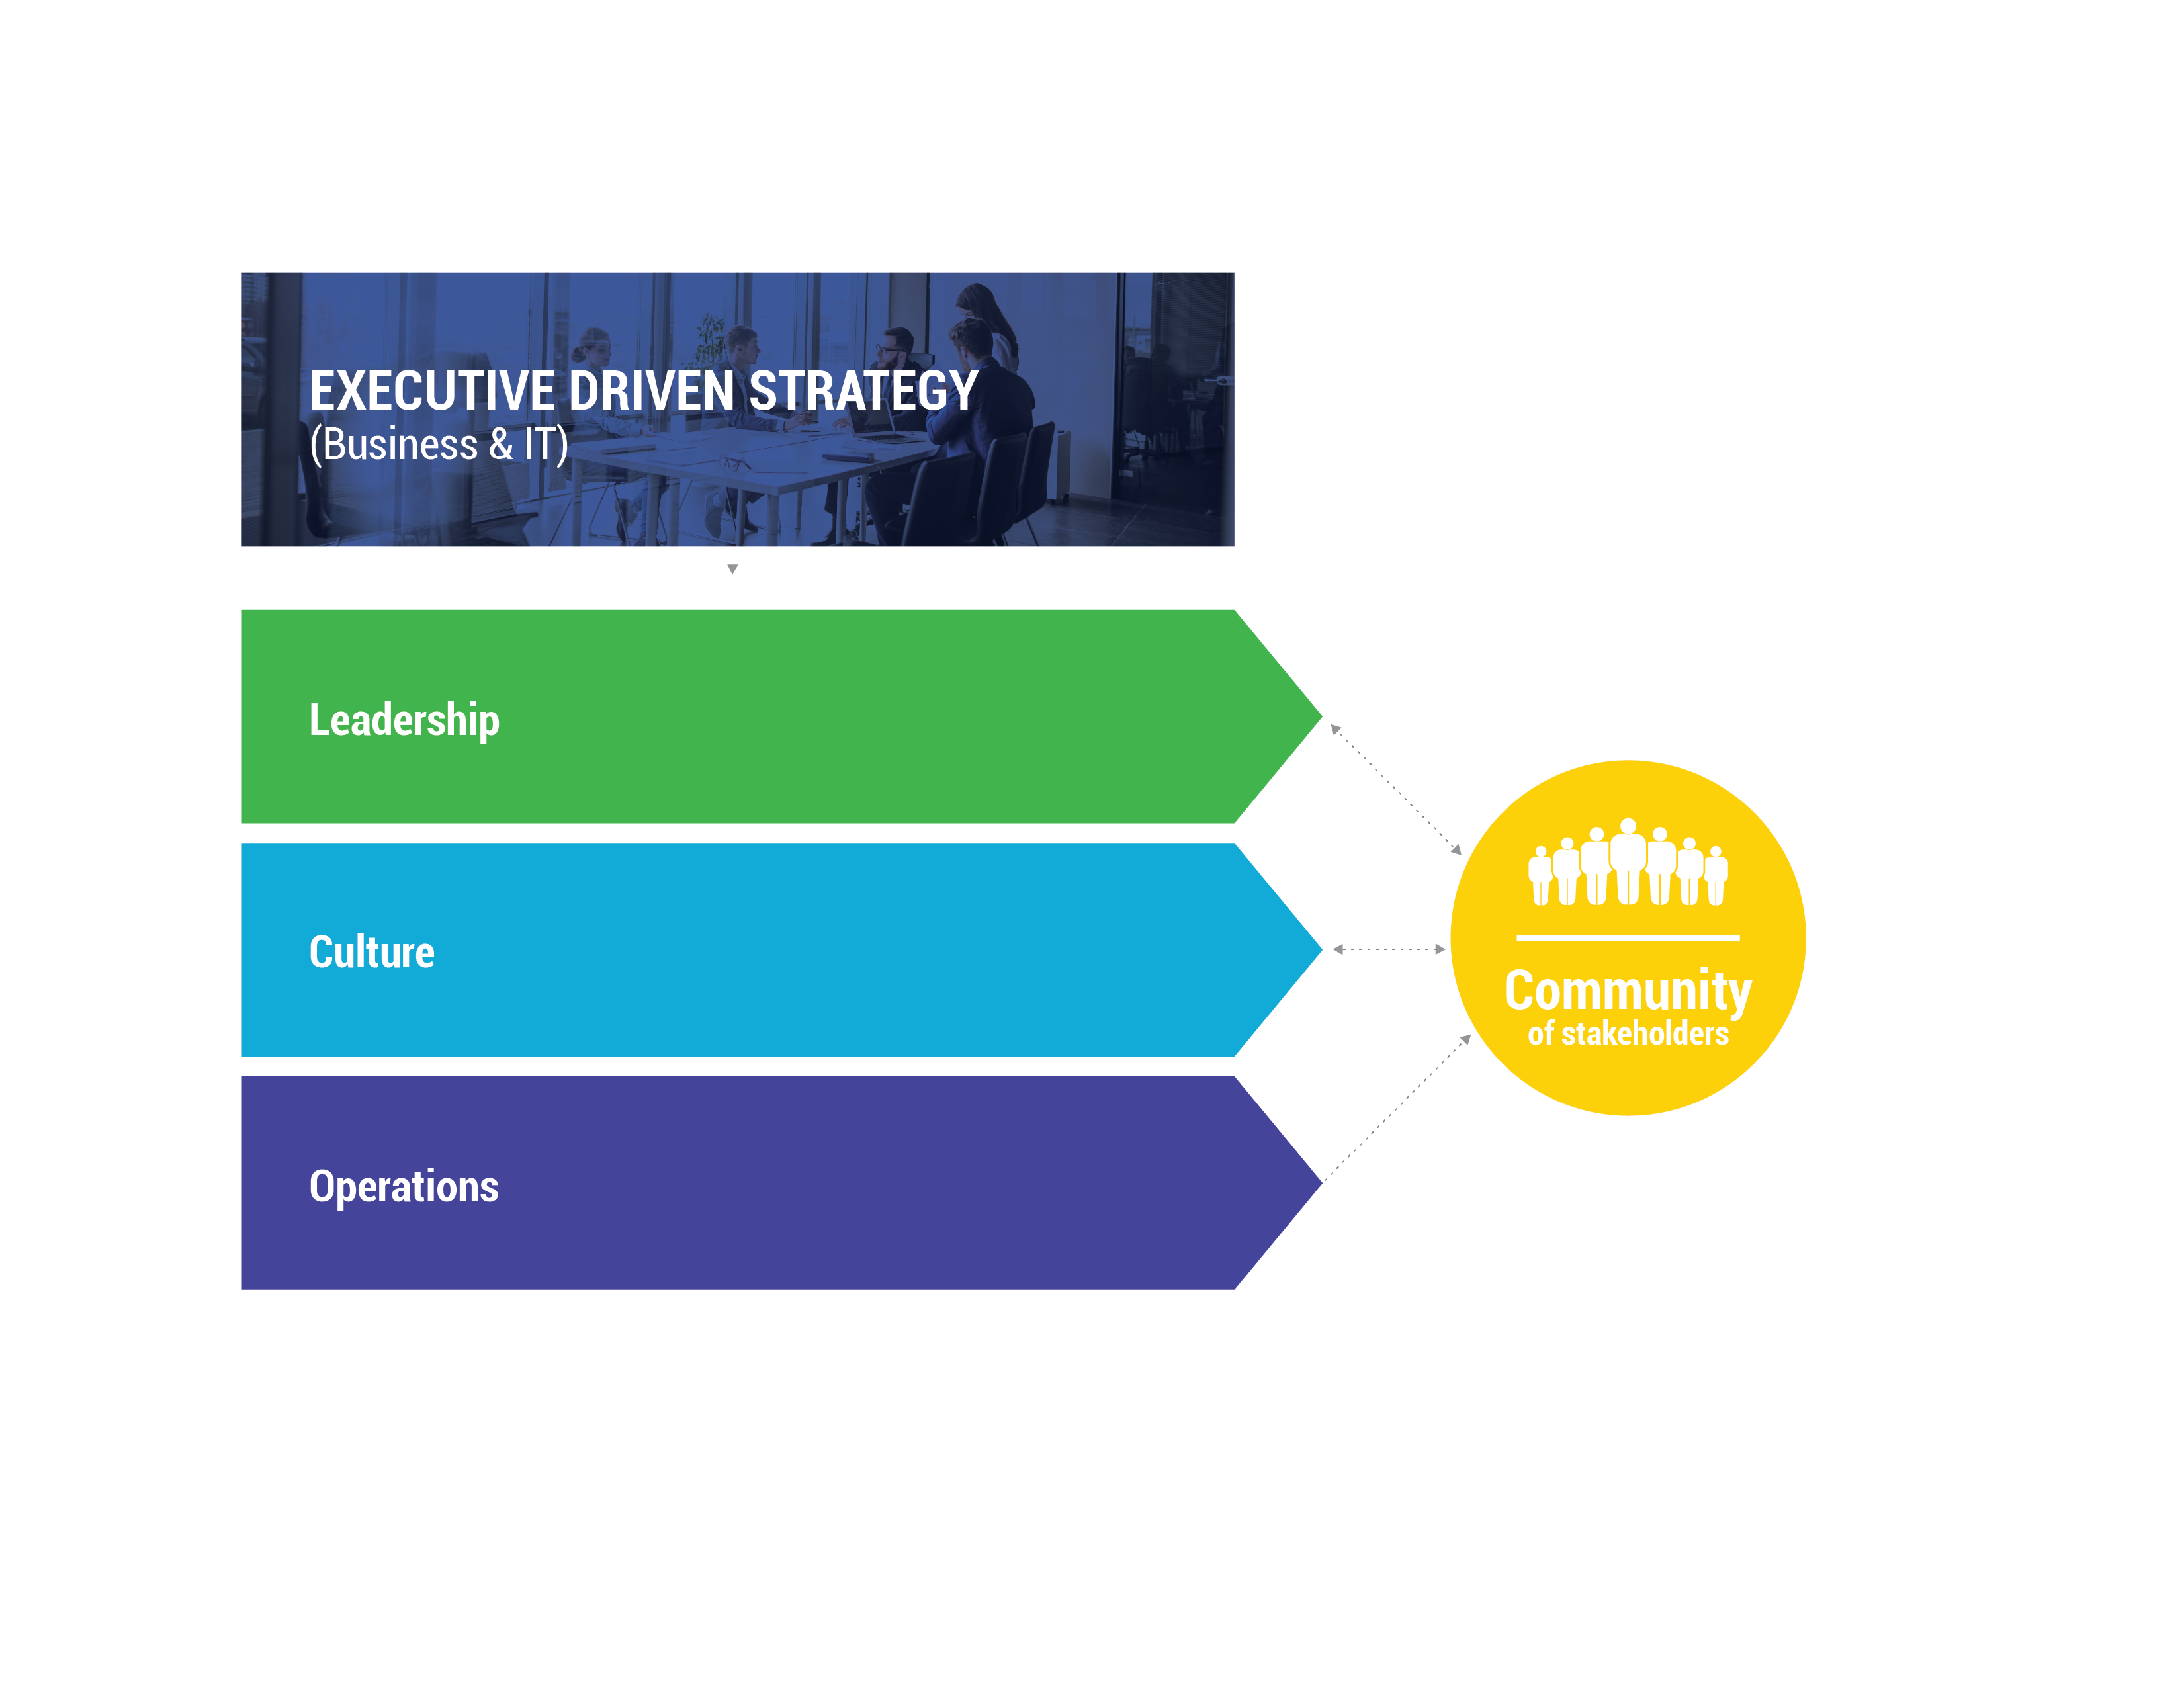 Experience-driven strategy to close the gap between business and IT chart